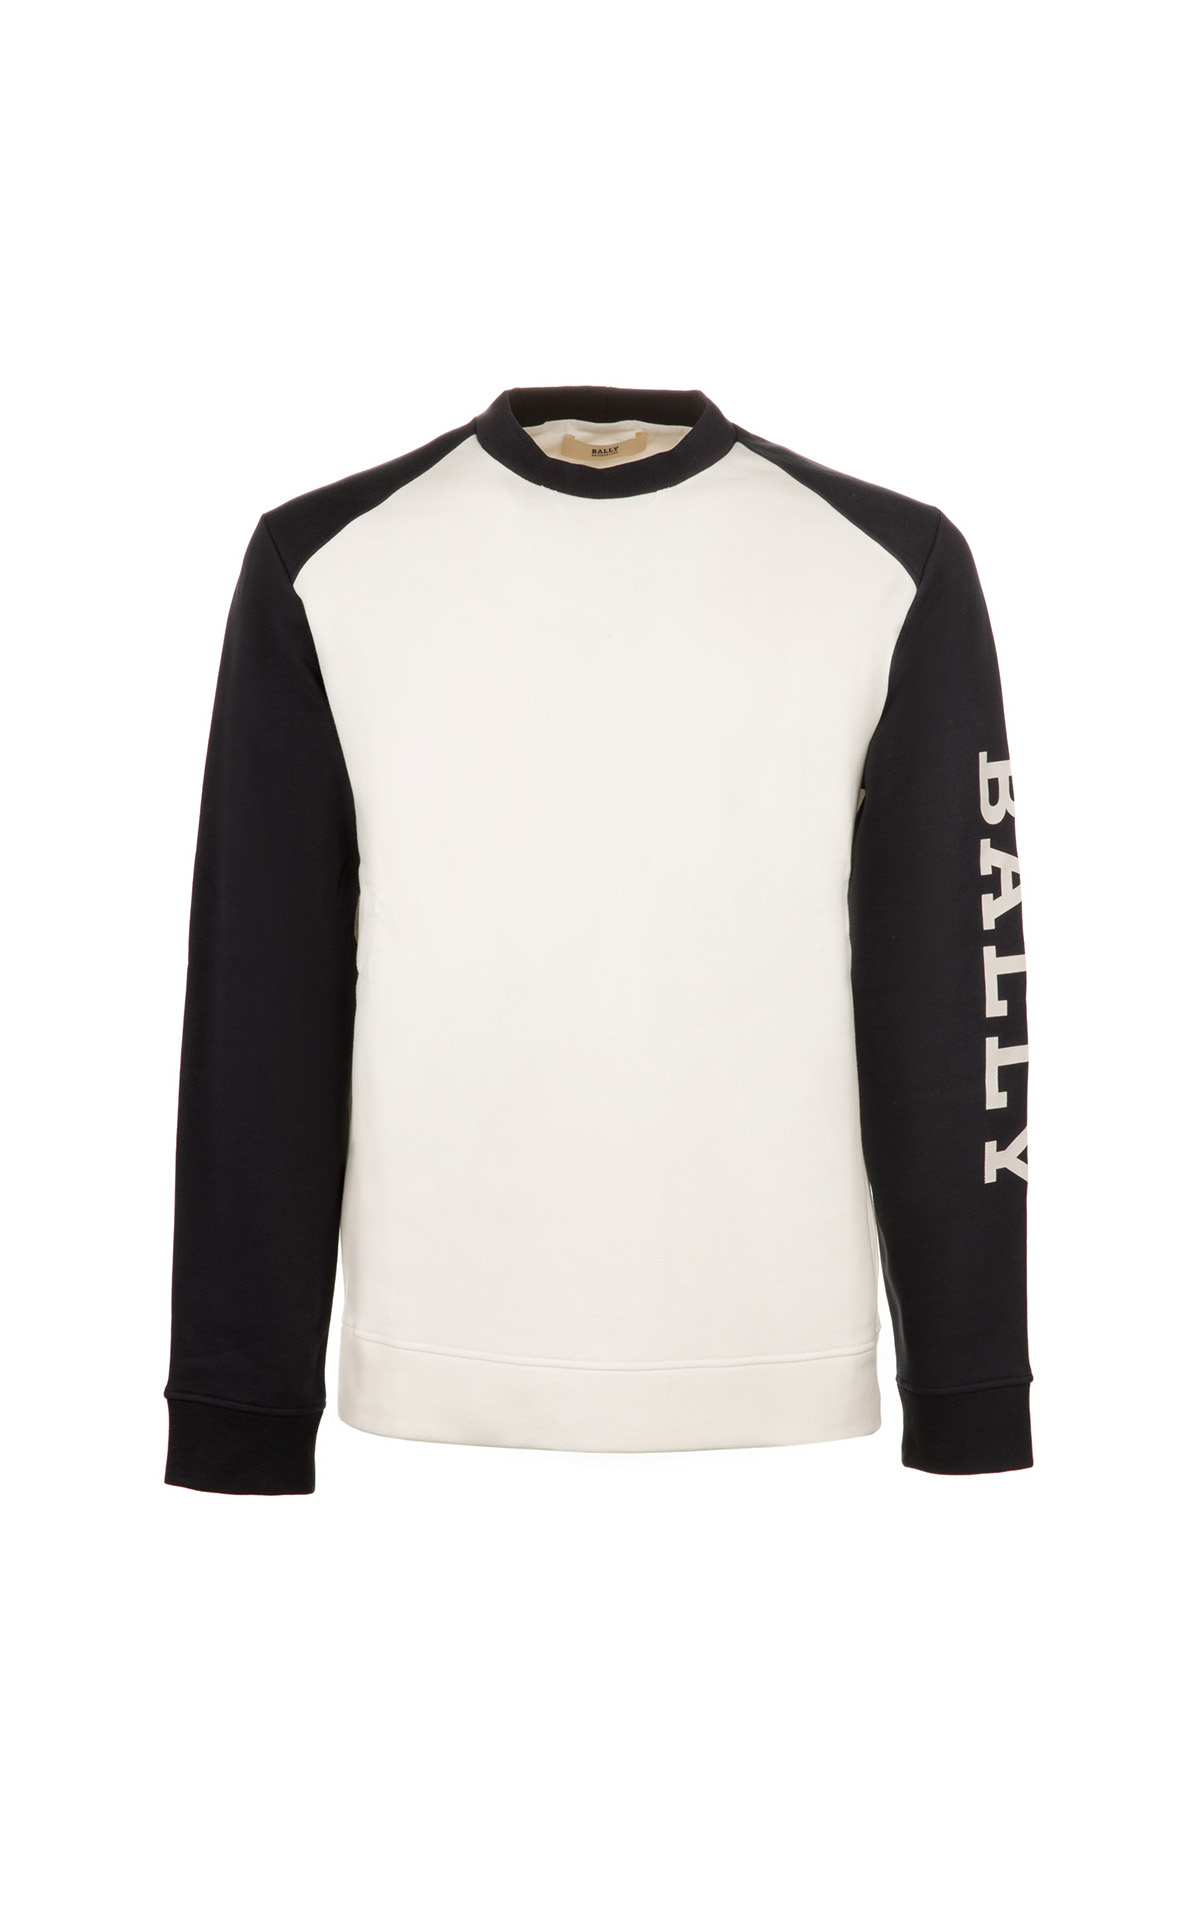 Bally Men's sweatshirt navy blue sleeves from Bicester Village